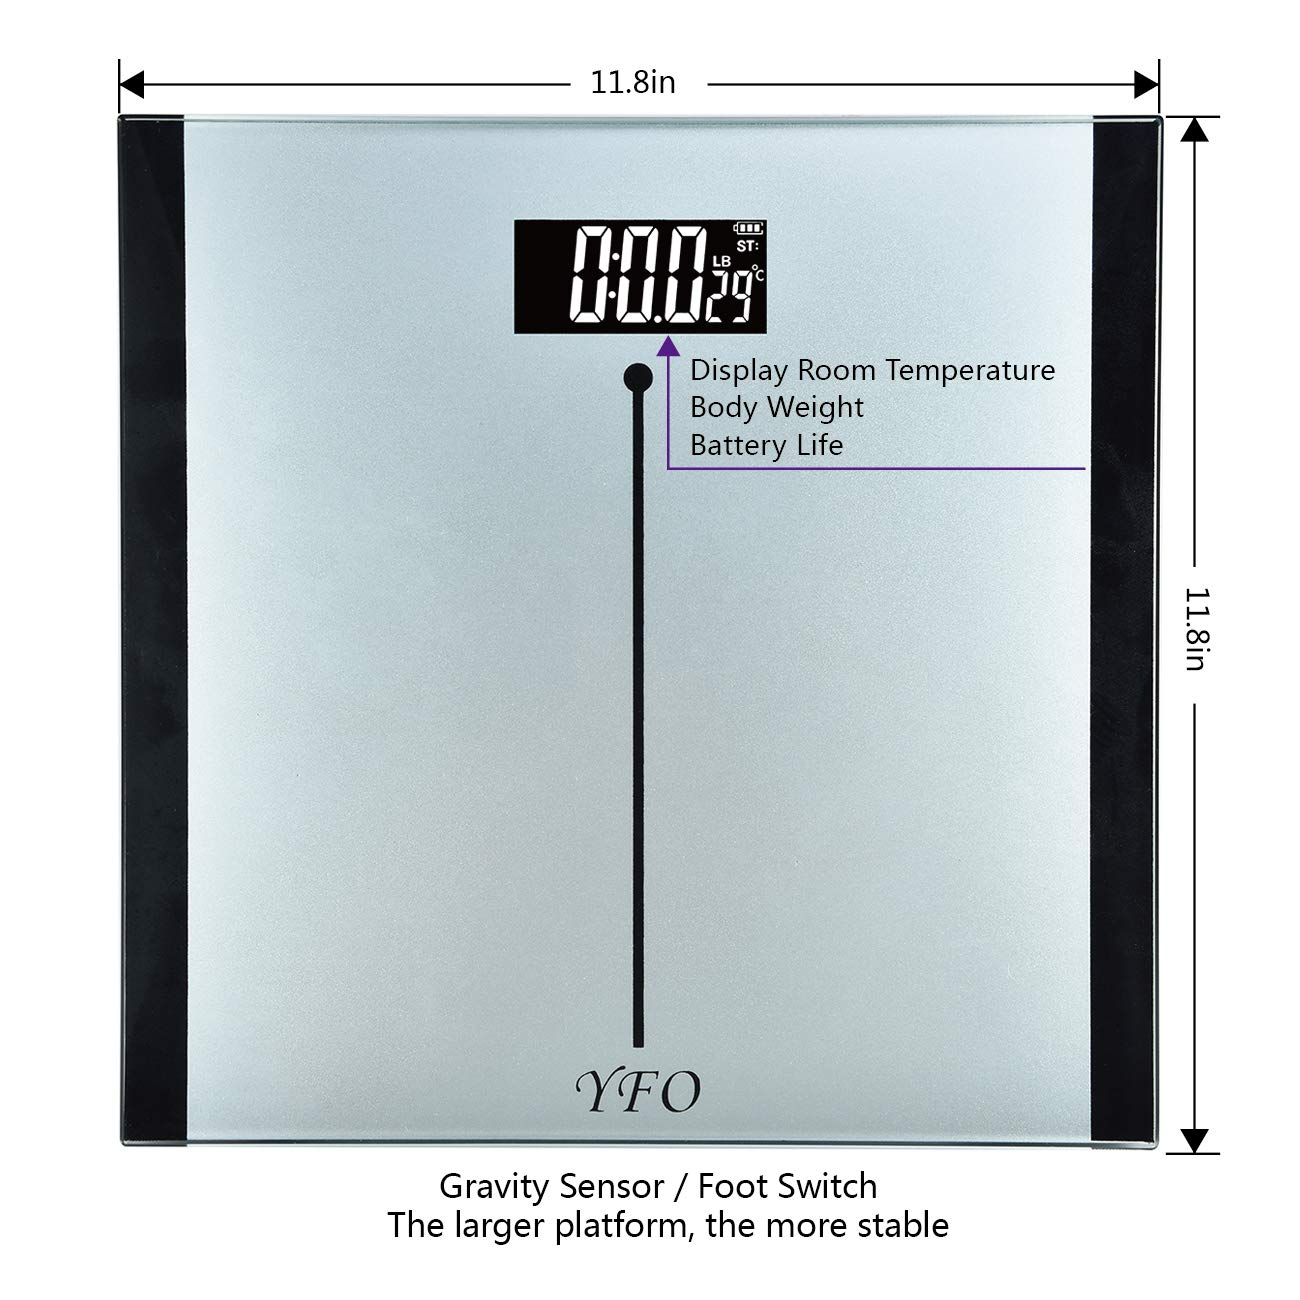 Digital Body Weight Bathroom Scale with Step-On Technology 11.8 11.8 Large Platform Plus 0.32in Tempered Safety Glass Two Unit KG and LB Display Room Tempreture, Elegant Silvery White